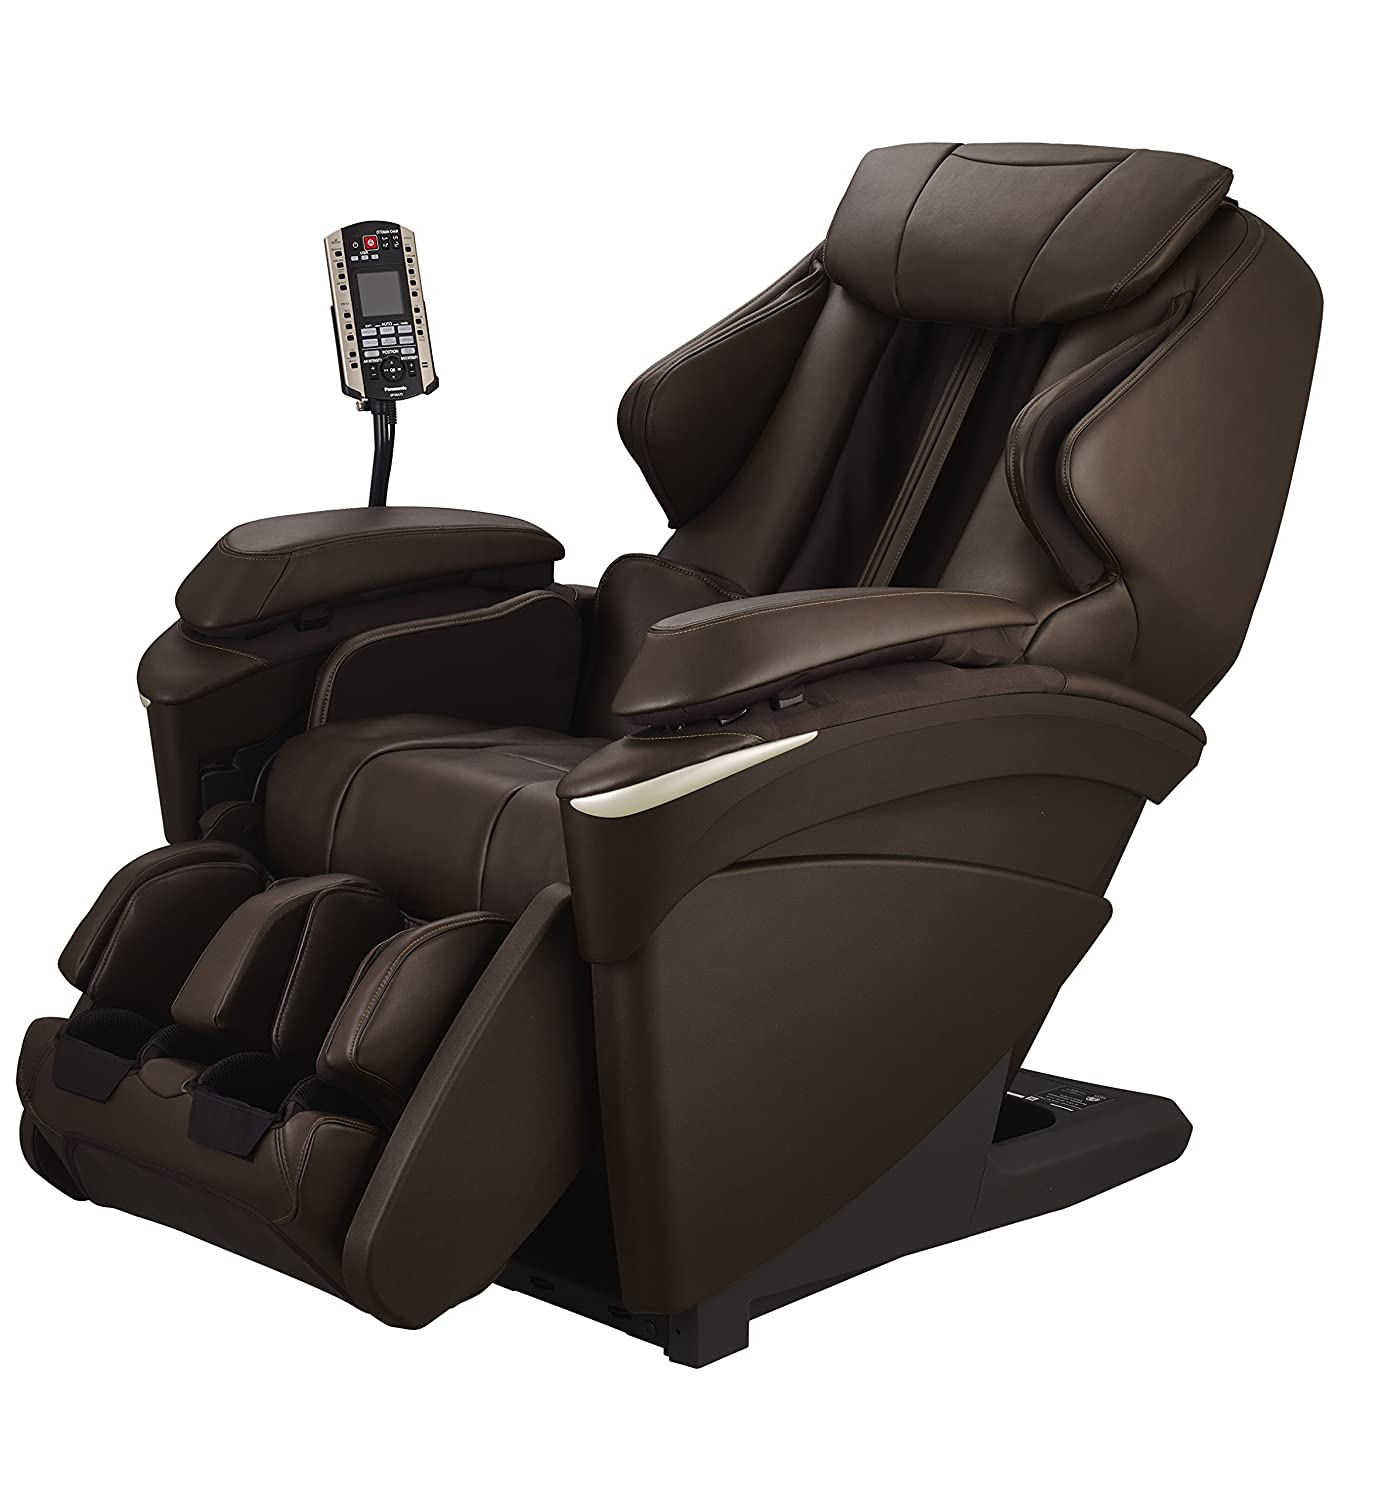 Amazon Panasonic EP Real Pro Luxury Heated Massage Chair